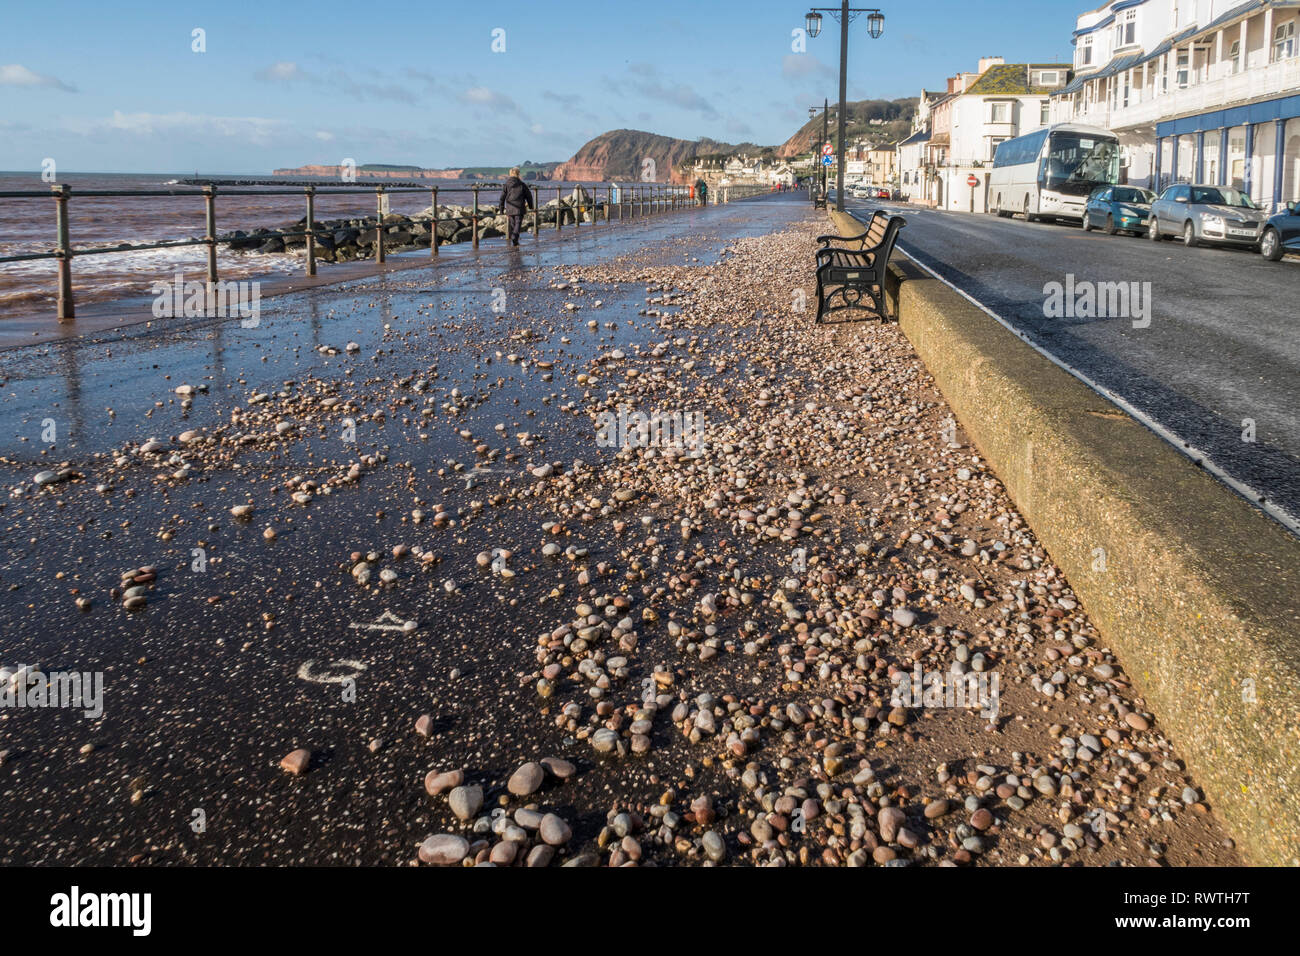 Pebble and shale from the beach thrown onto the seafront Esplanade at Sidmouth by a storm. - Stock Image